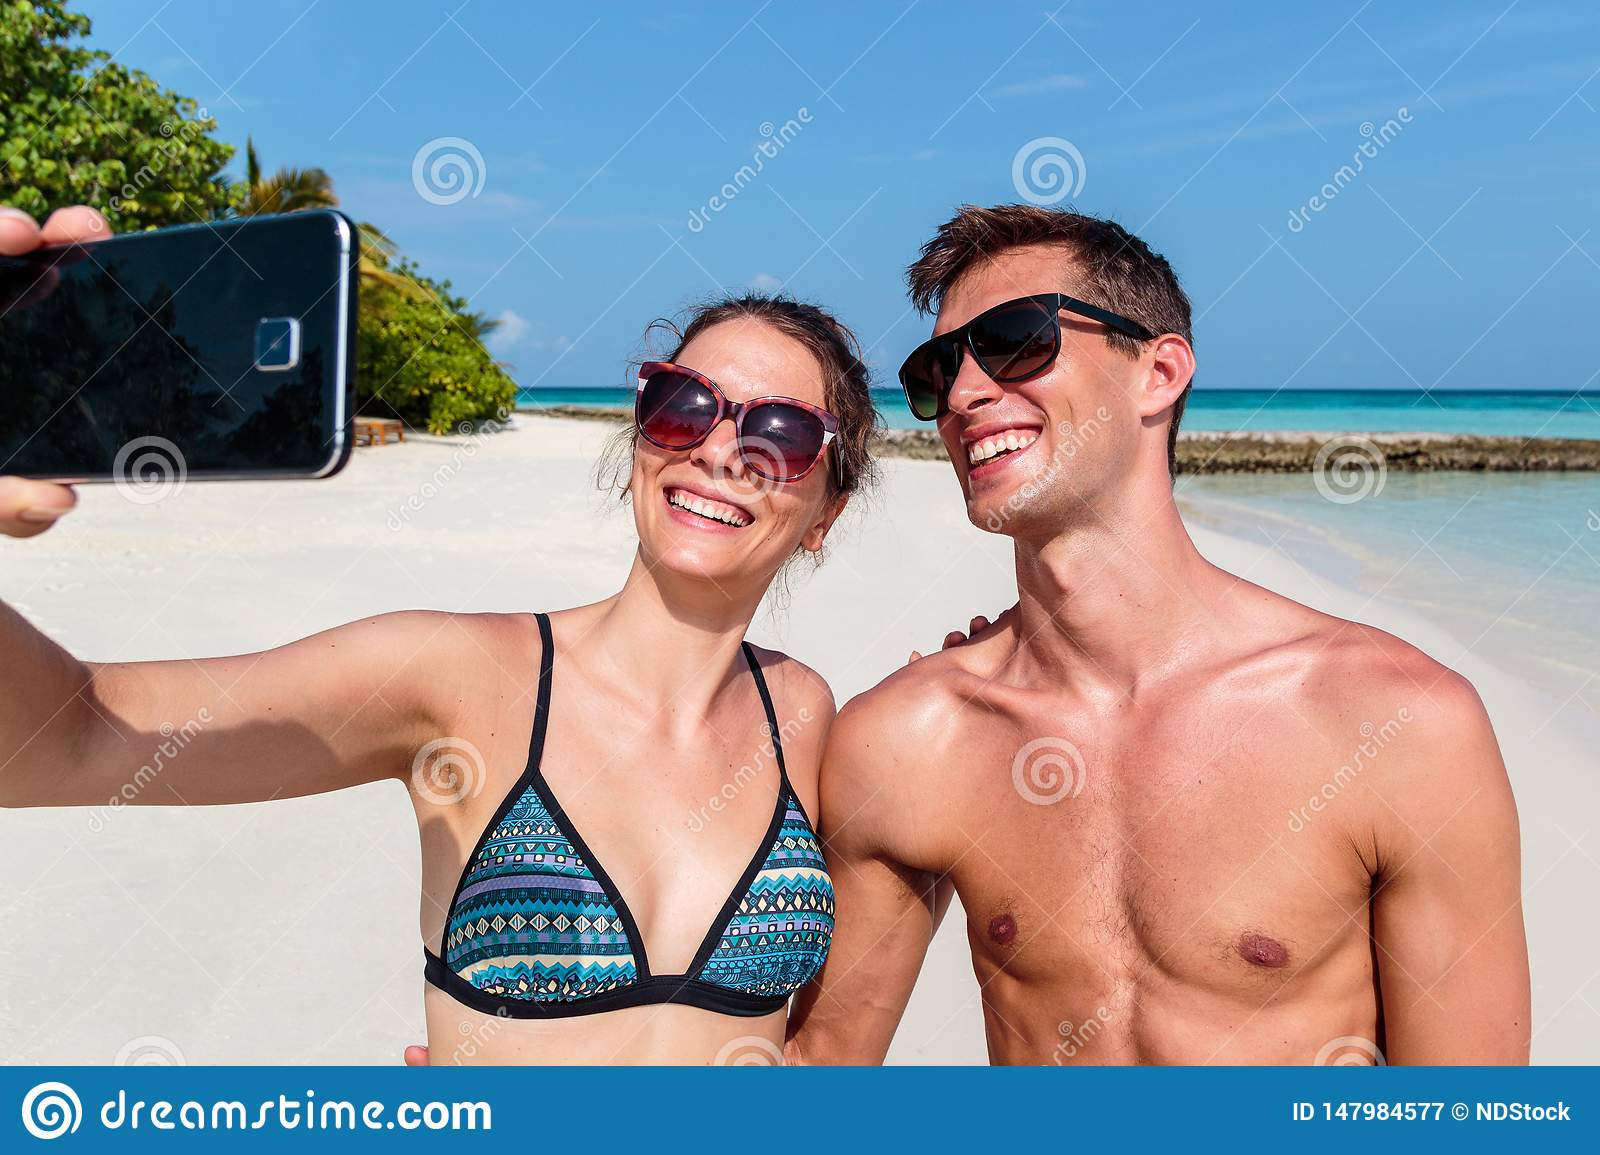 Happy young couple taking a selfie. Tropical island as background